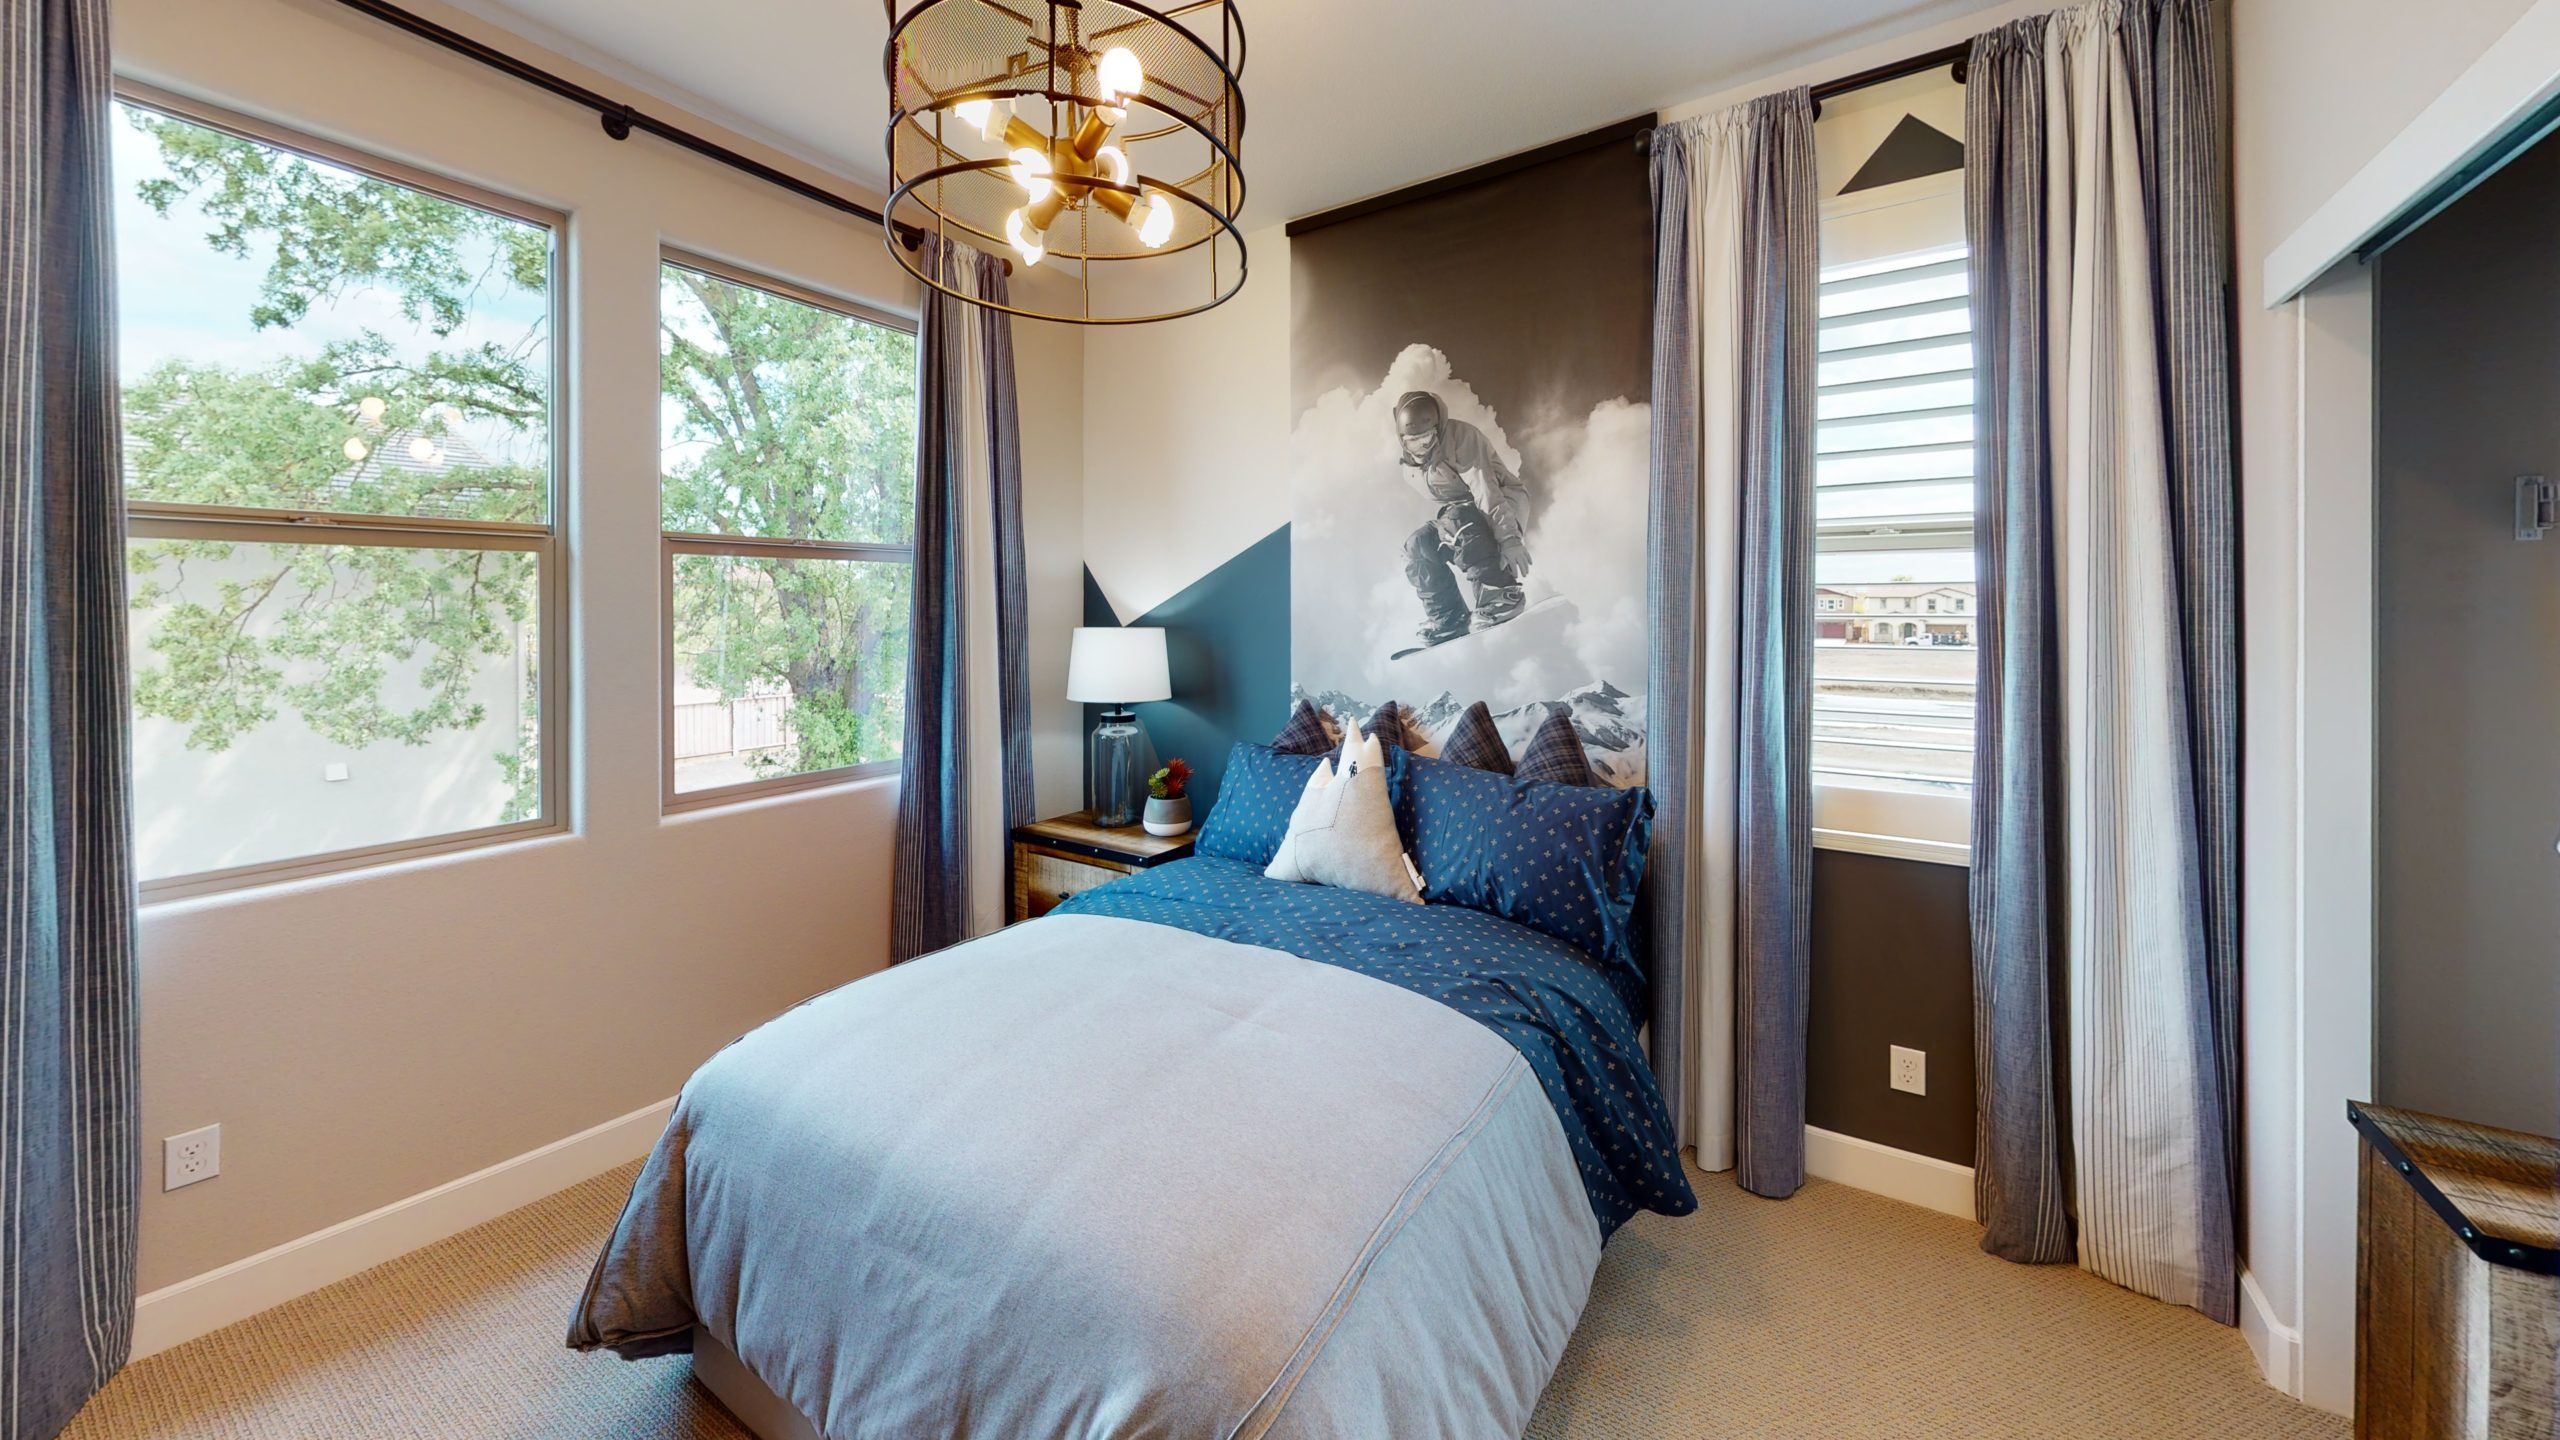 Bedroom featured in the Residence 3 By Next New Homes Group in Sacramento, CA